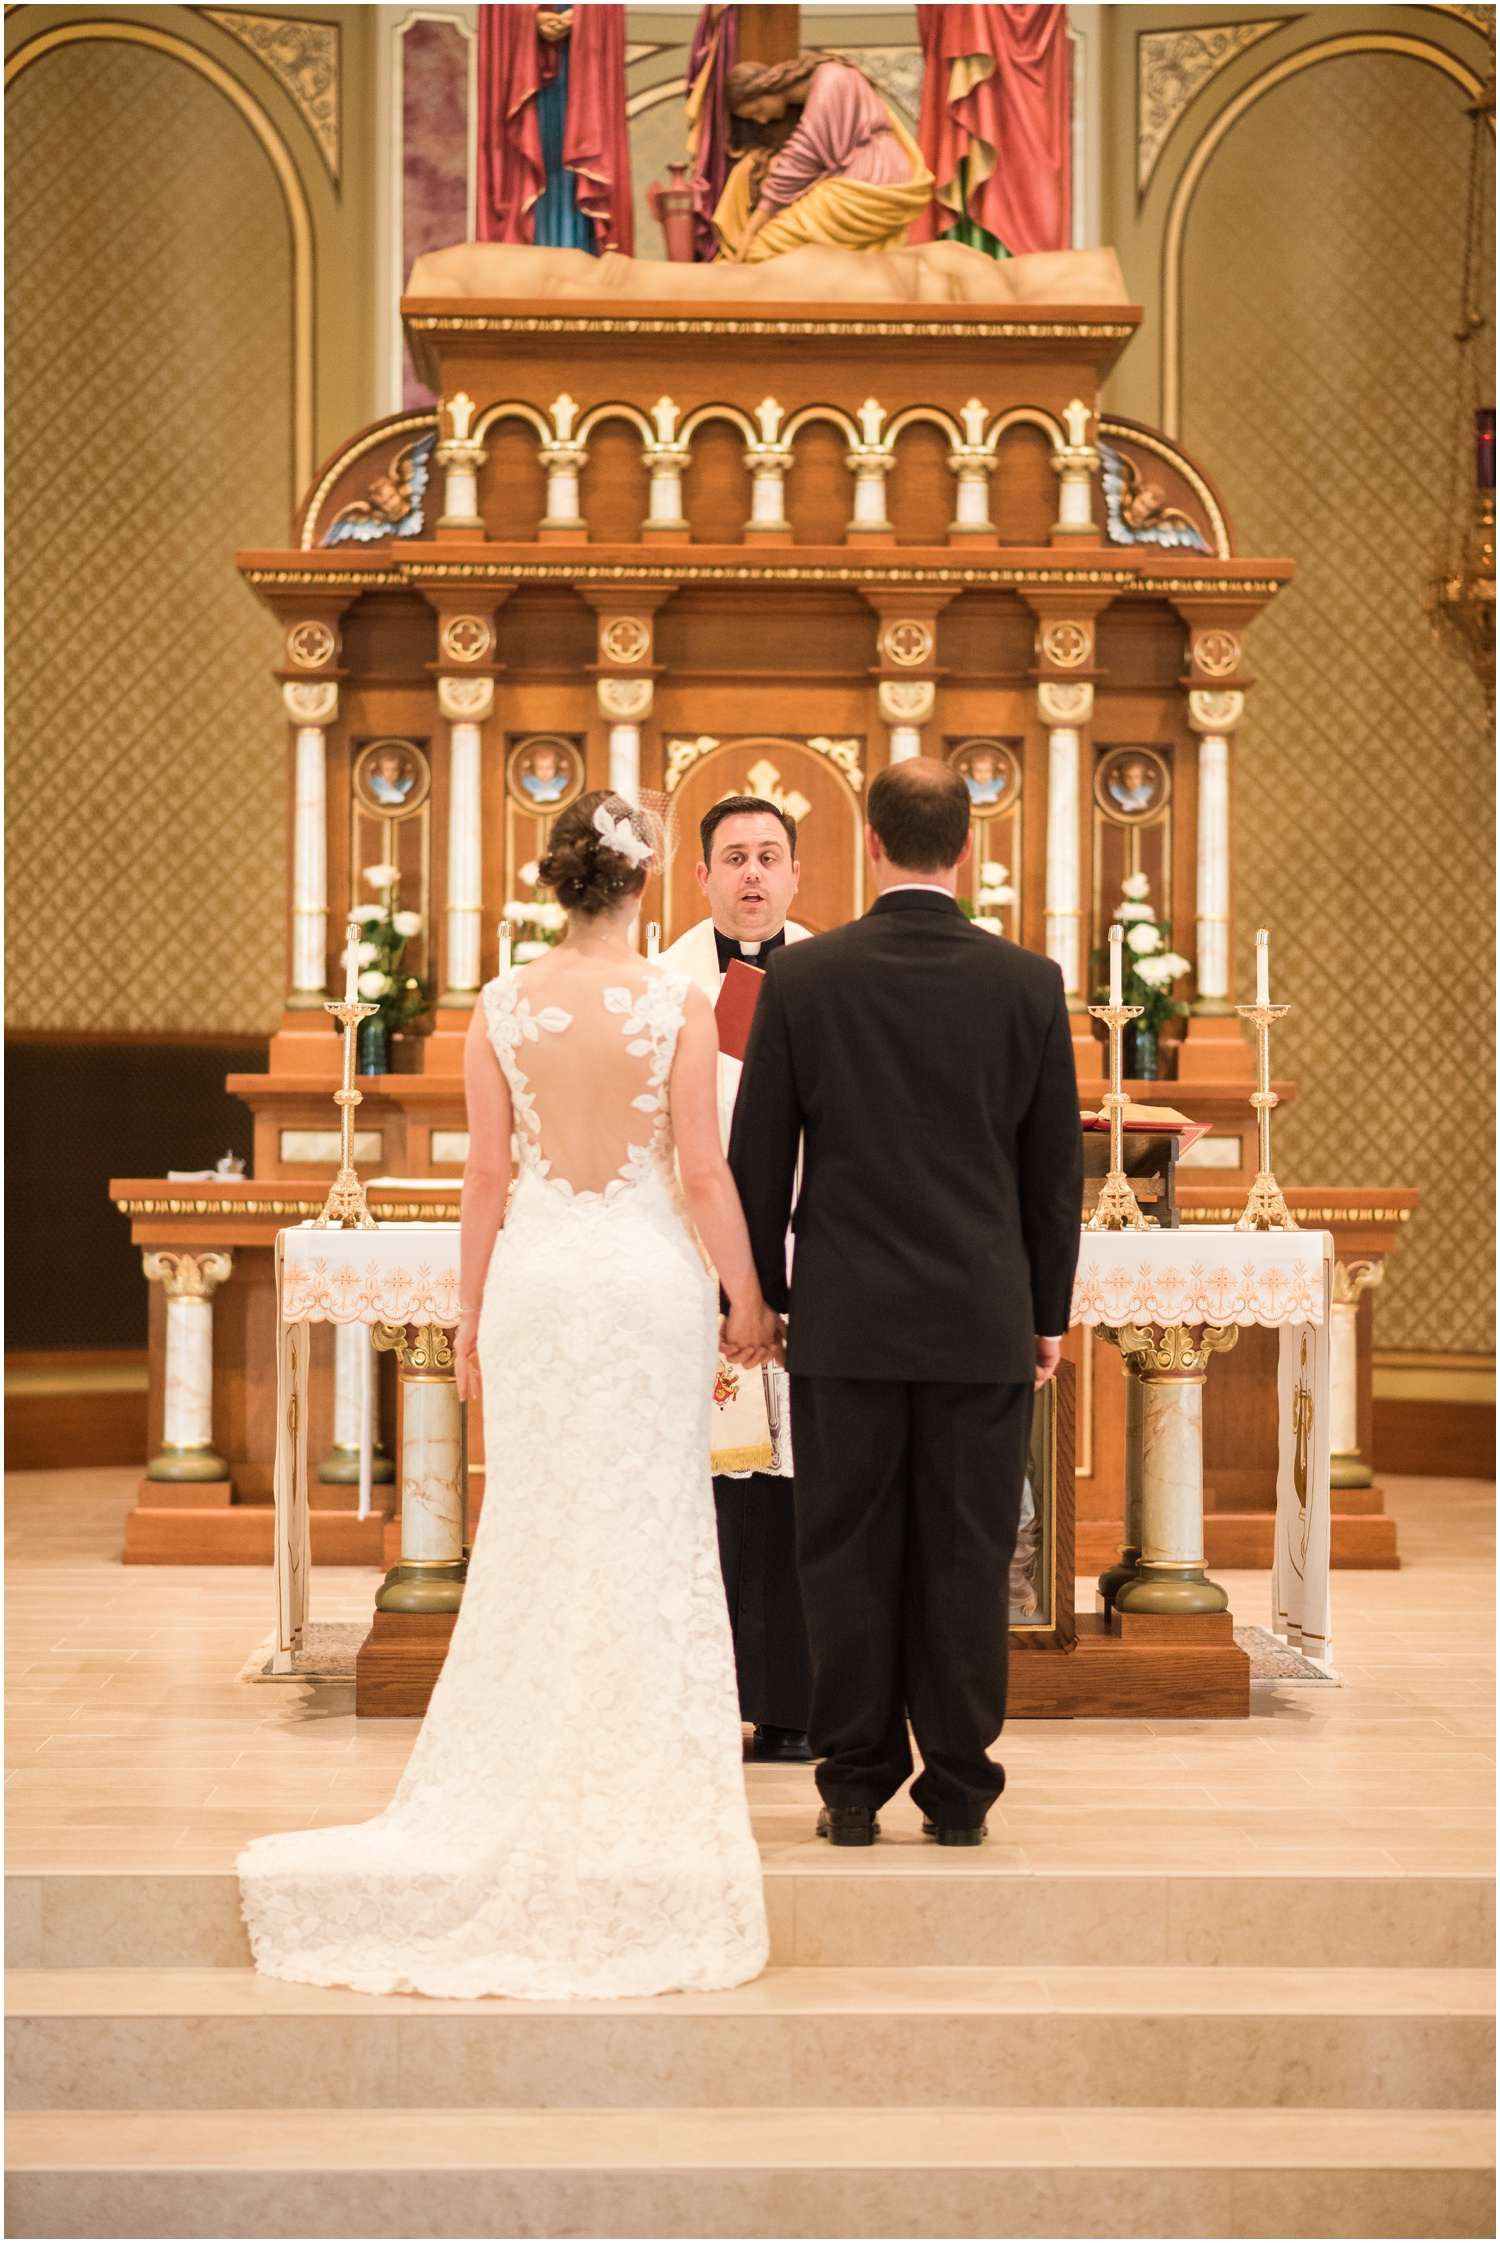 WISCONSIN DELLS WEDDING PHOTOGRAPHER | ST. CECILIA CATHOLIC CHURCH | WISCONSIN DELLS, WI | WEDDING_0236.jpg